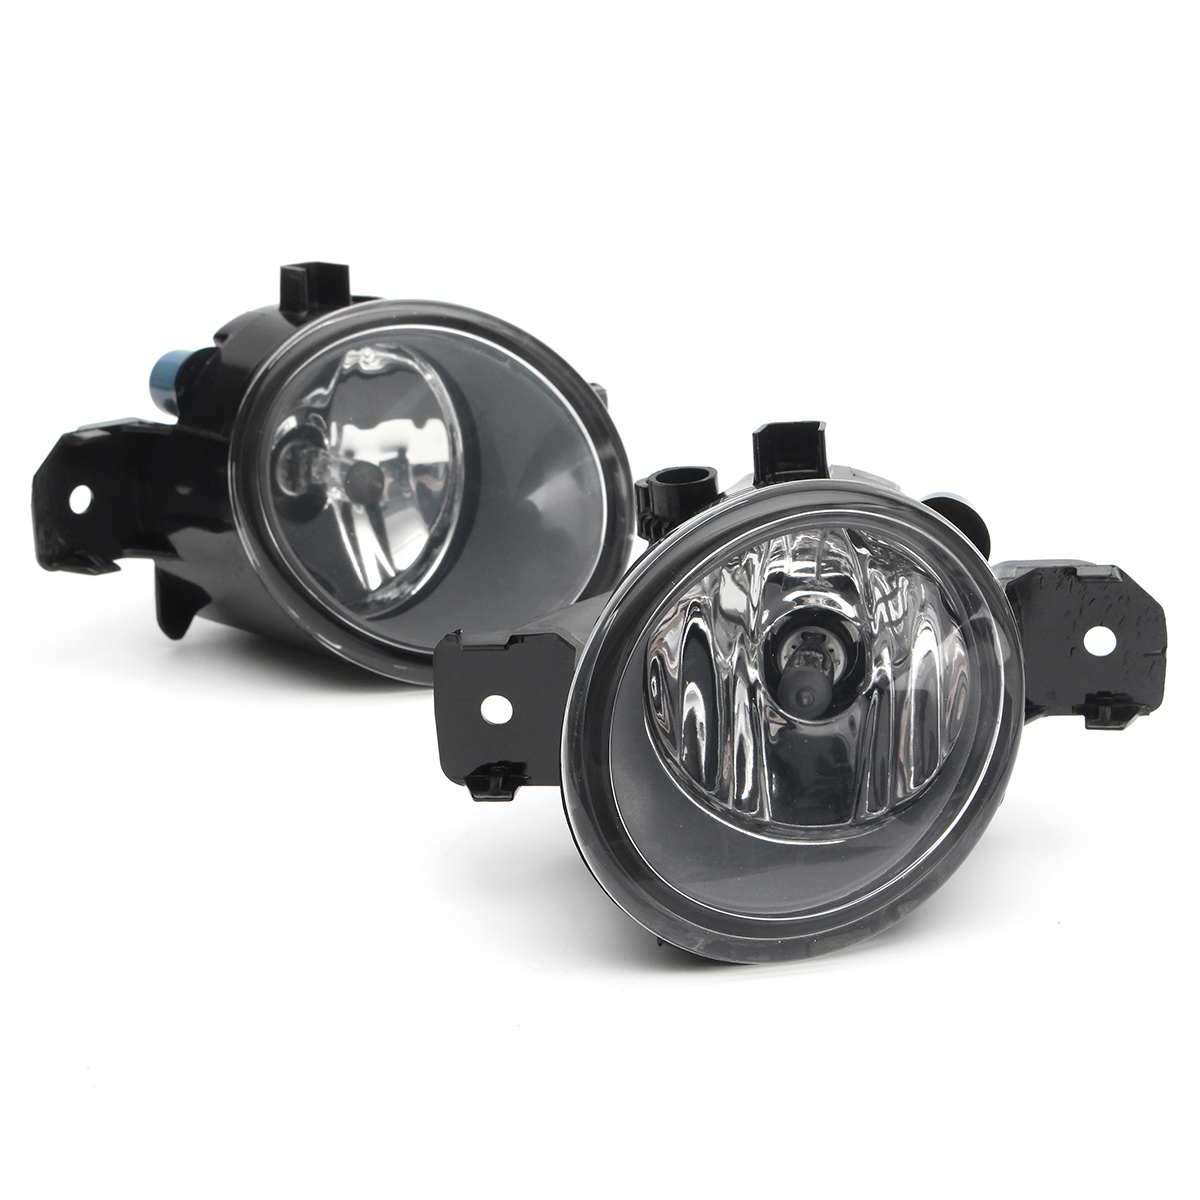 A  Pair Of 55W 12V  Fog Lights  Lamp Left /Right /Front  For  Nissan Altima  Maxima  Rogue Sentra  Clear